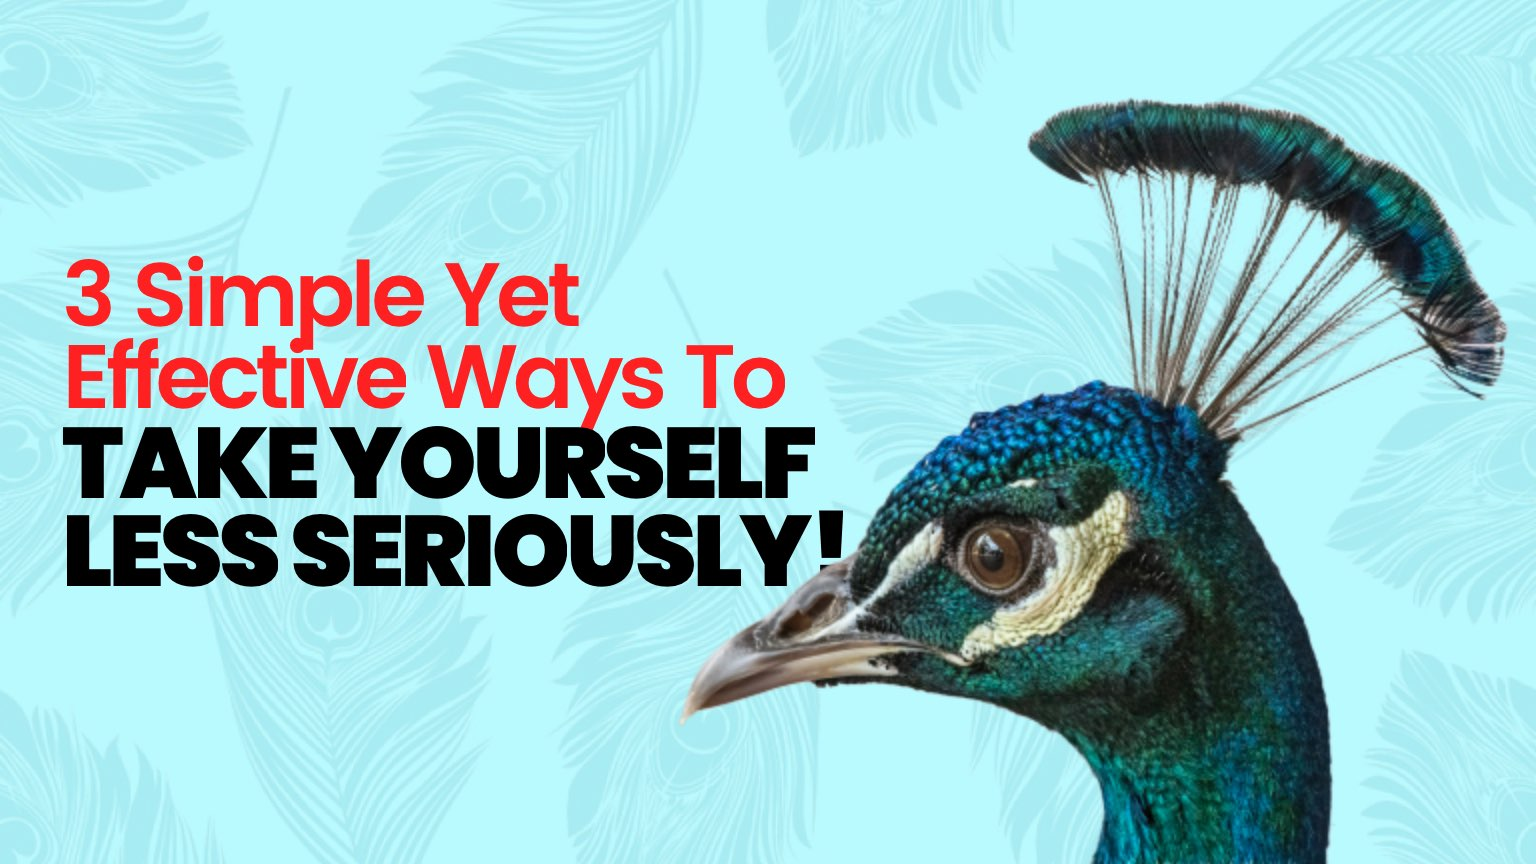 3 Simple Yet Effective Ways To Help You Take Yourself Less Seriously@2x